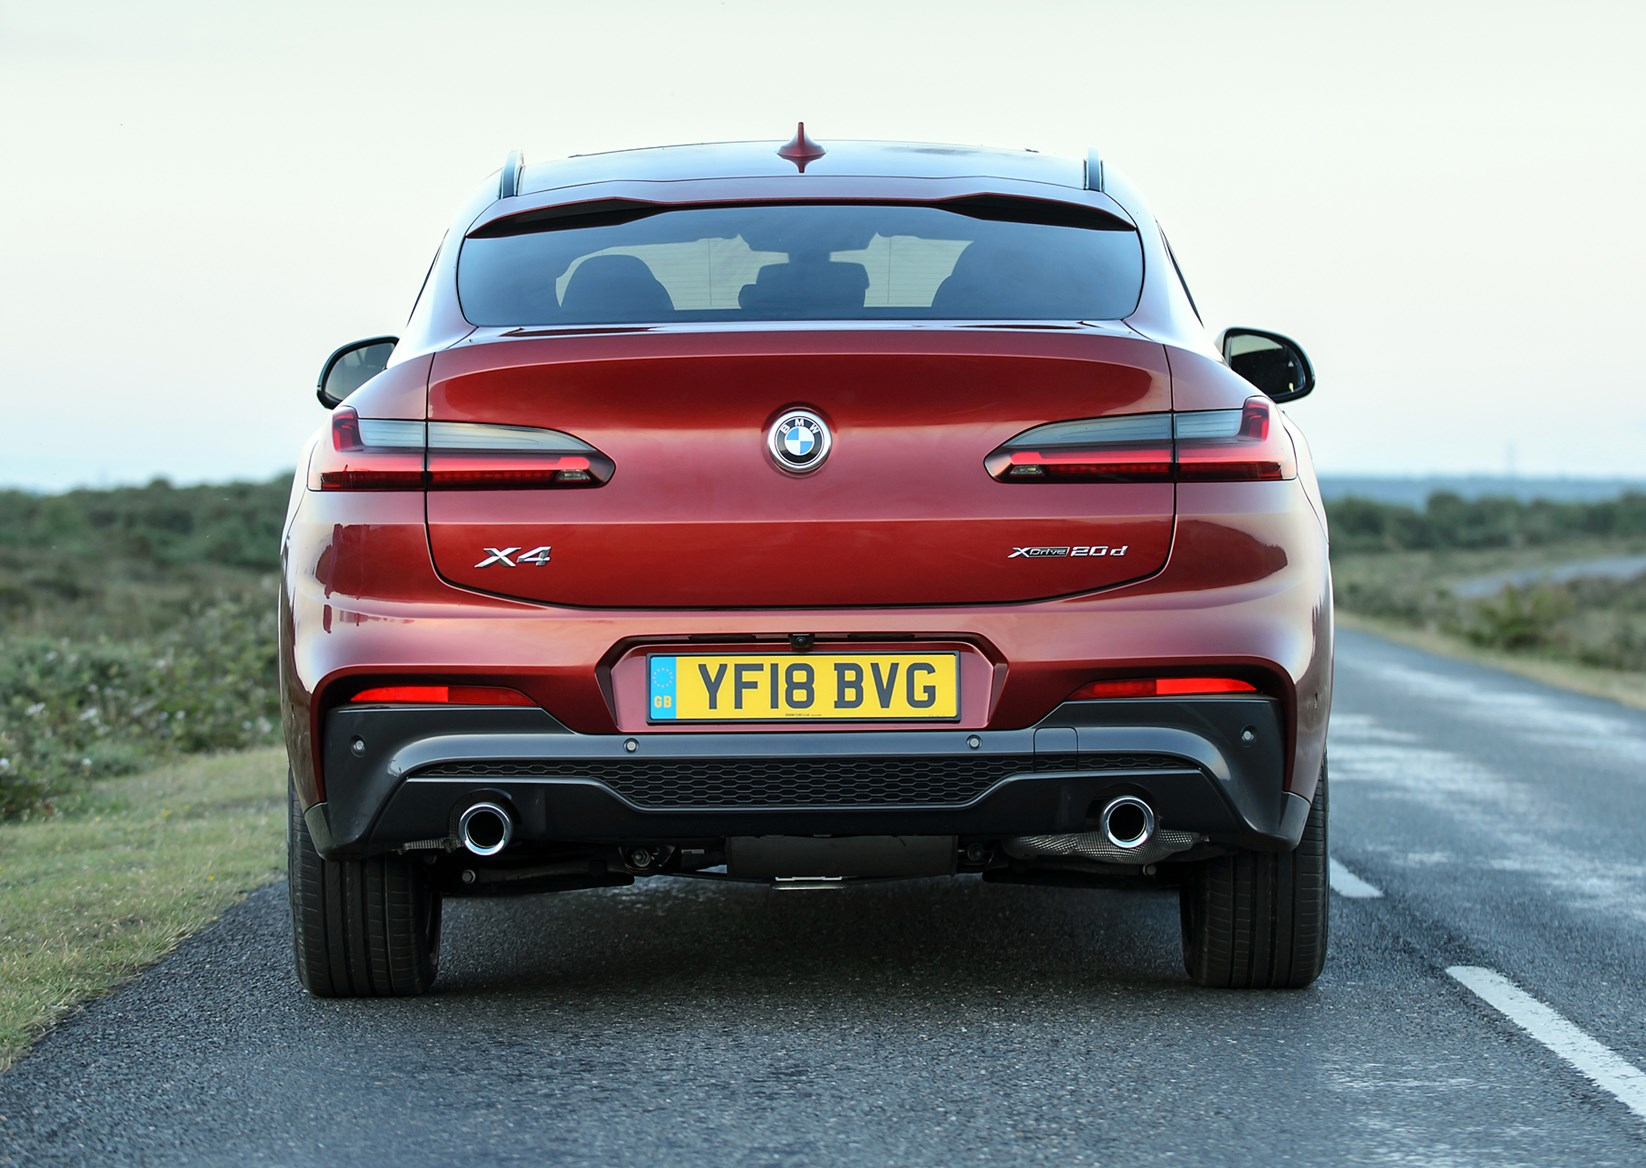 Bmw Exterior: BMW X4 SUV (2018 - ) Photos